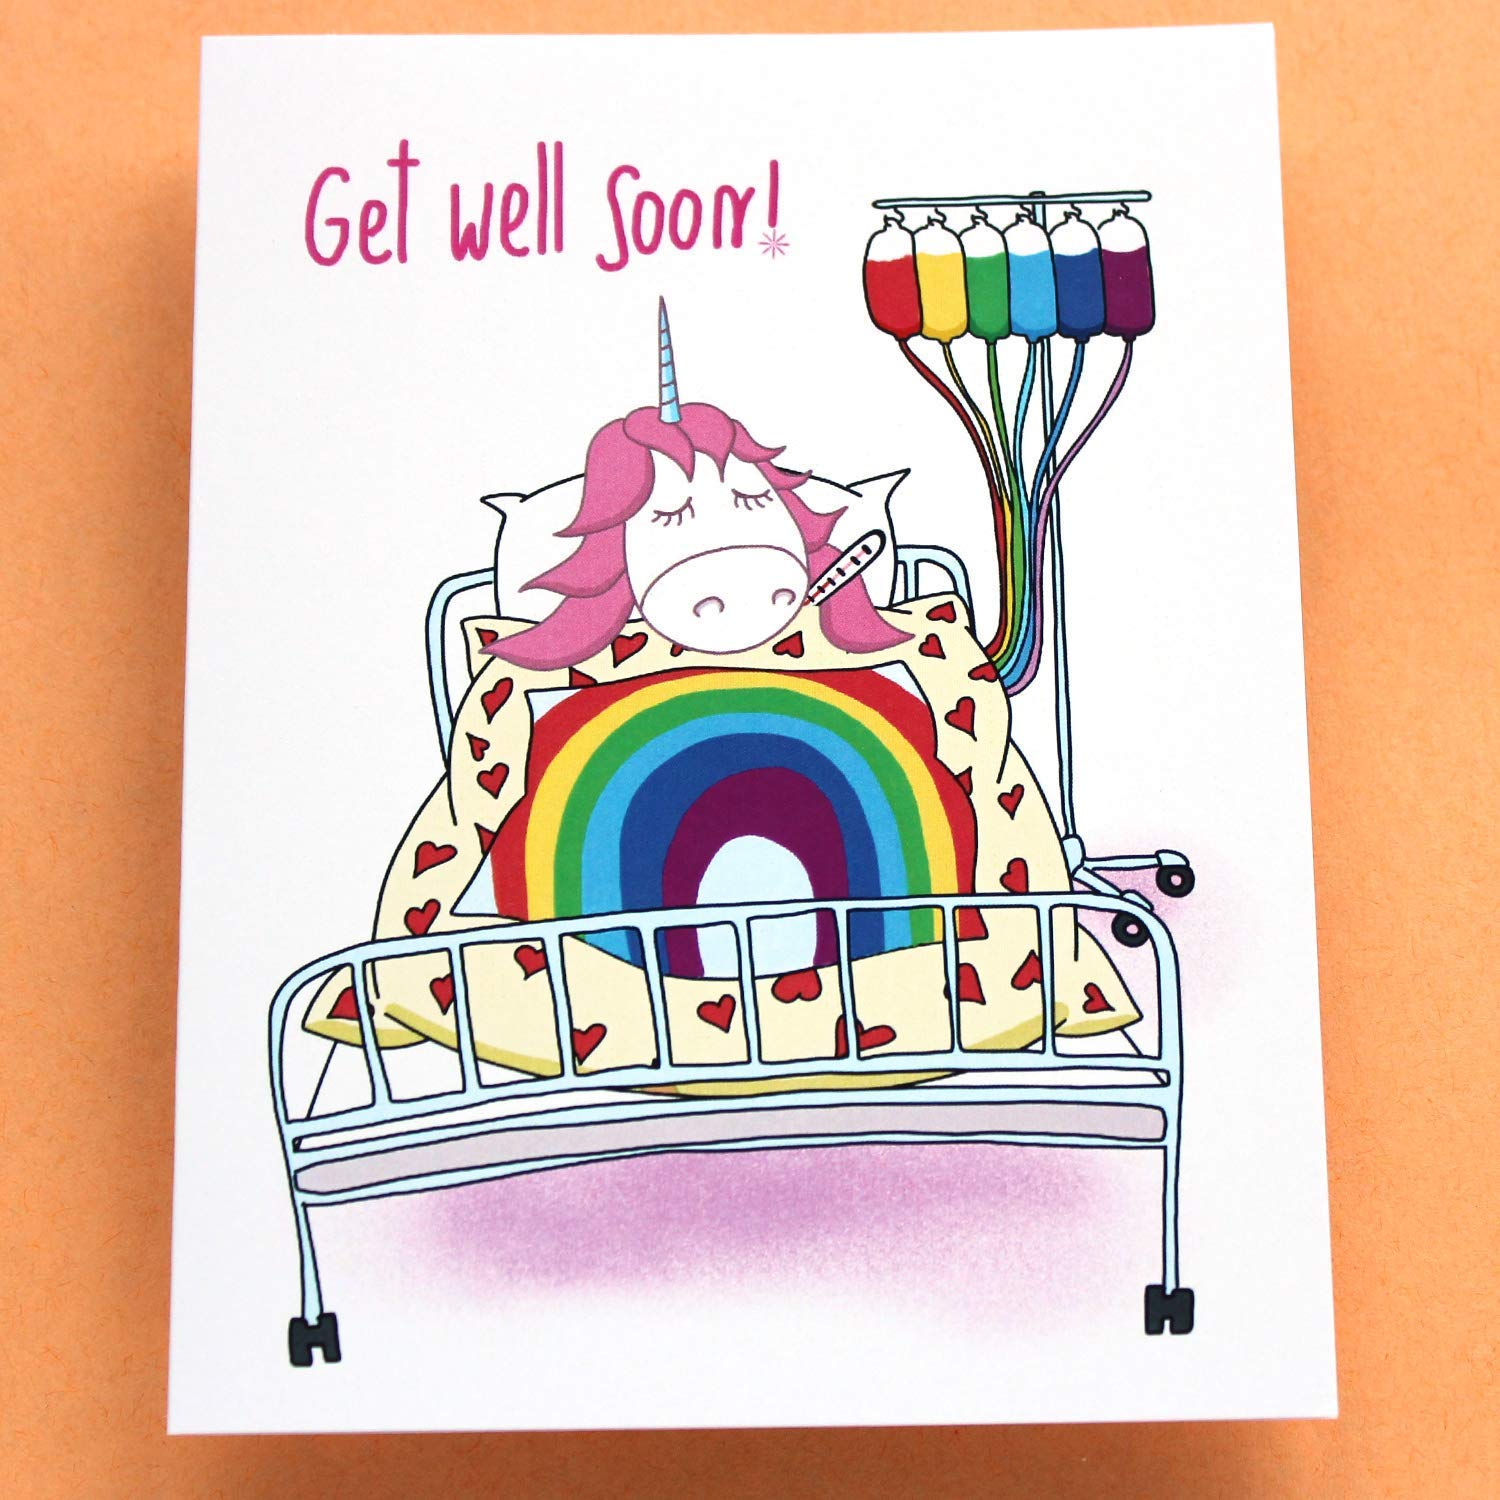 Amazoncom Funny Get Well Card With Unicorn Get Well Soon